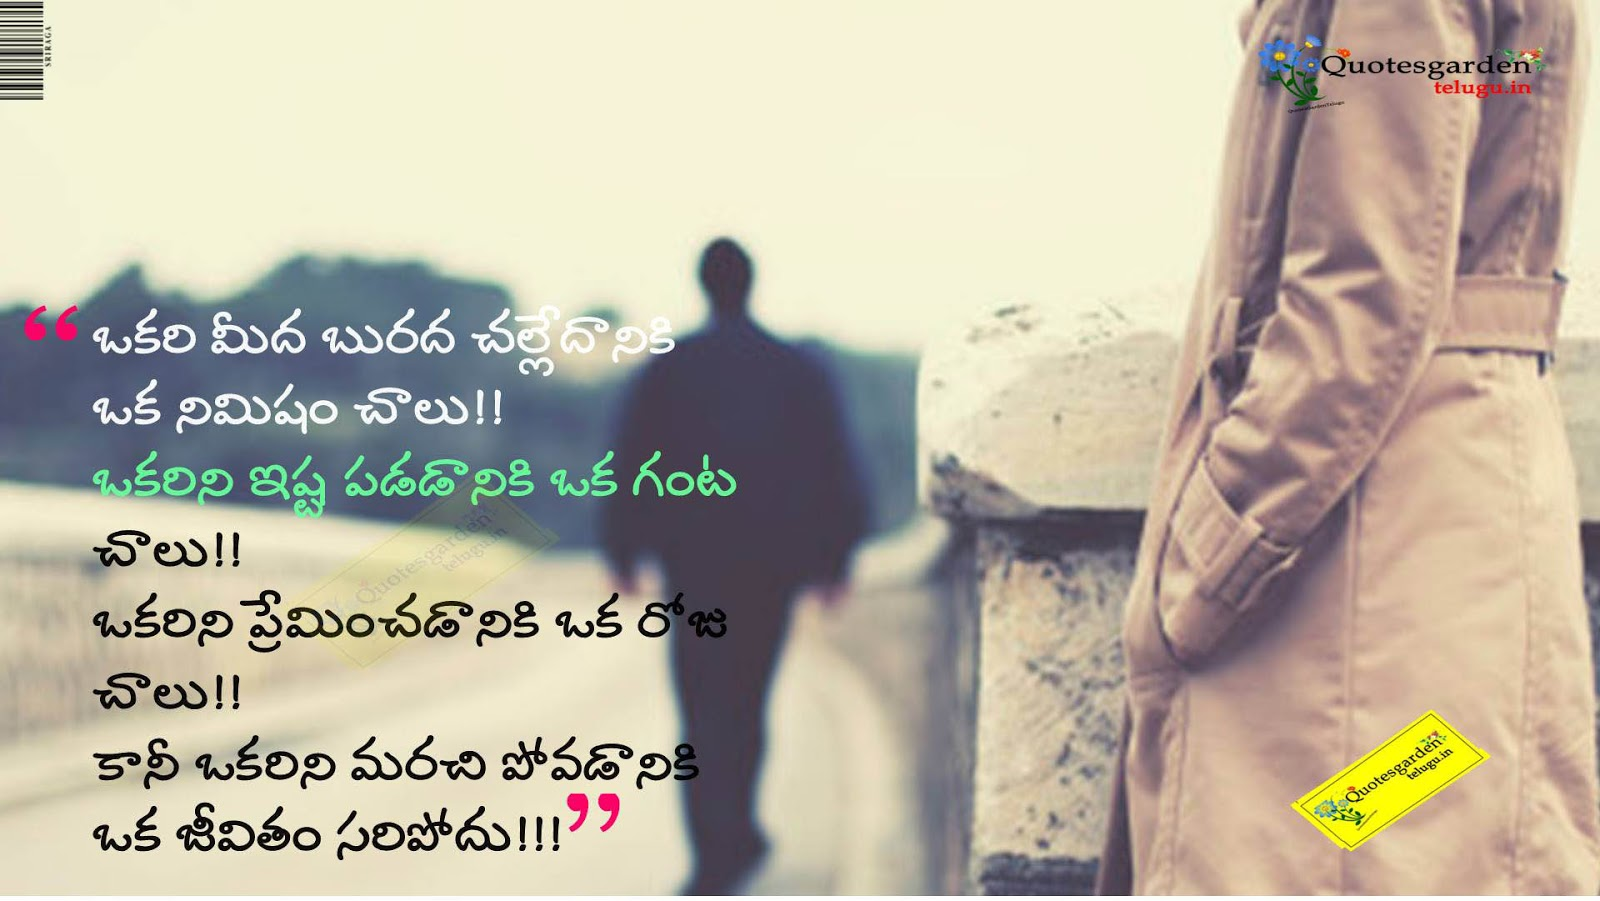 heart touching telugu love quotes 111214 quotes garden